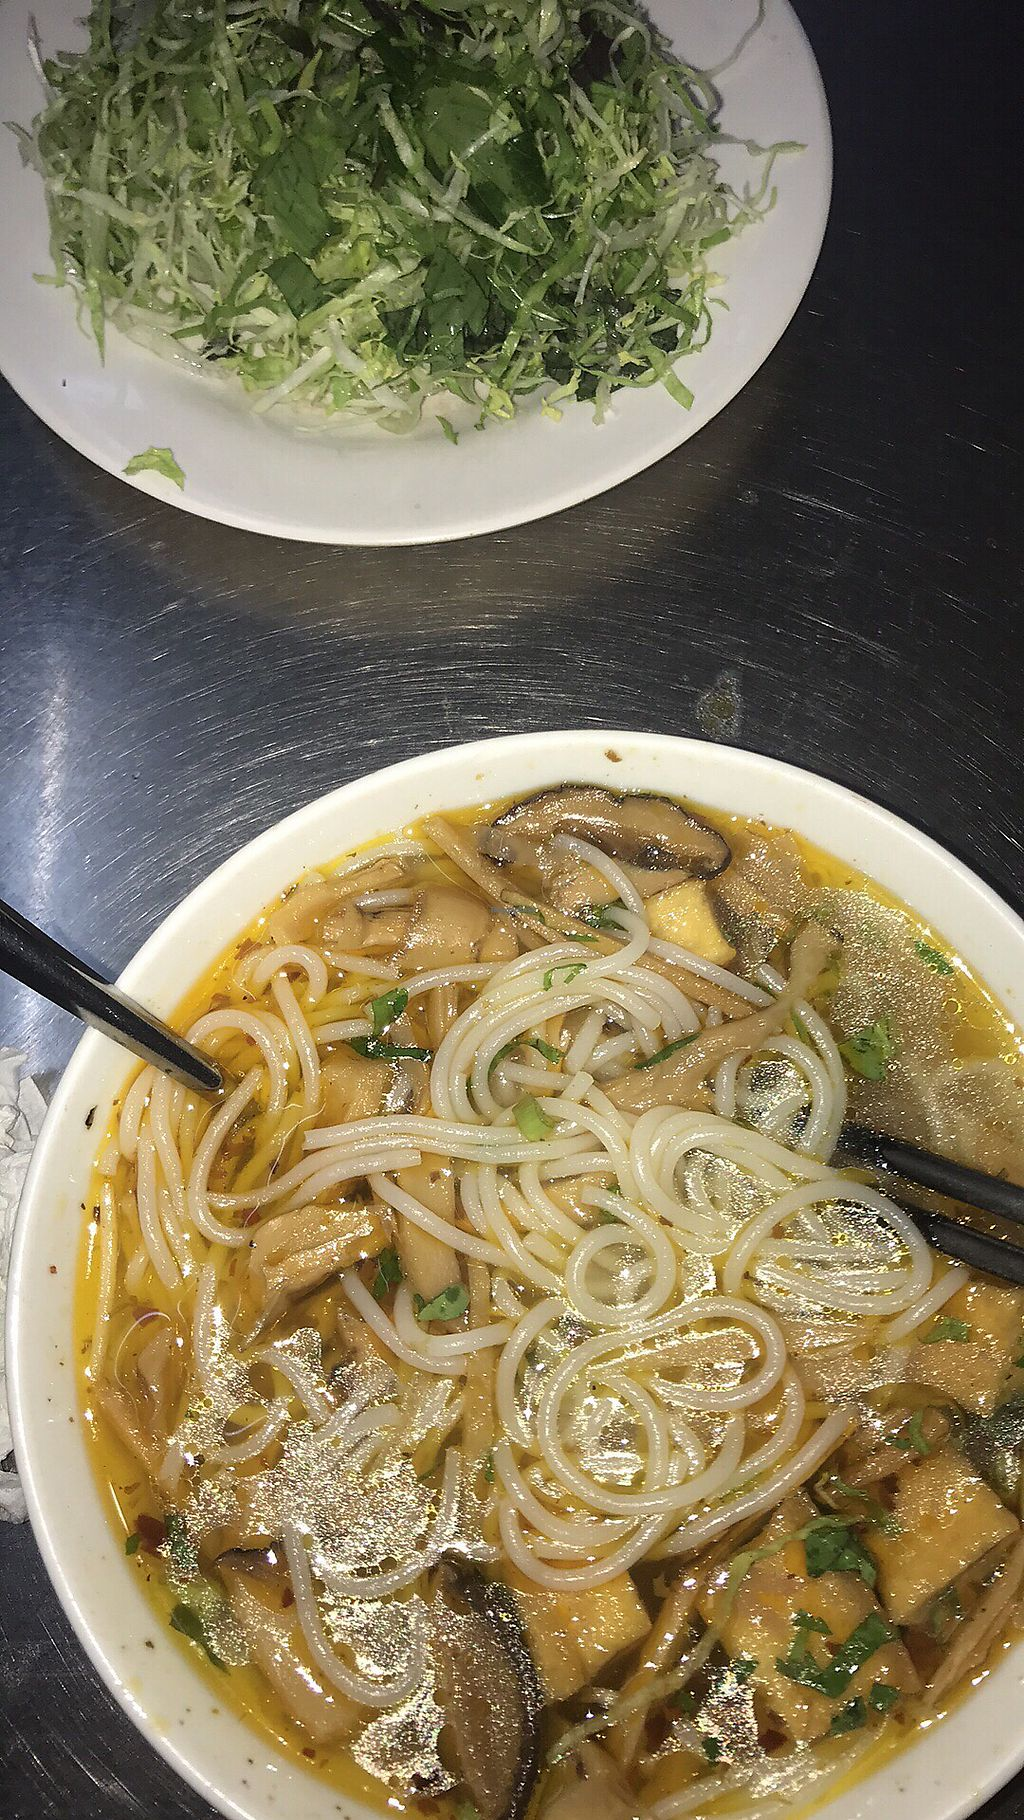 "Photo of Thien Duyen 1  by <a href=""/members/profile/rosieann"">rosieann</a> <br/>Hanoi style noodle soup  <br/> February 28, 2018  - <a href='/contact/abuse/image/53631/364907'>Report</a>"